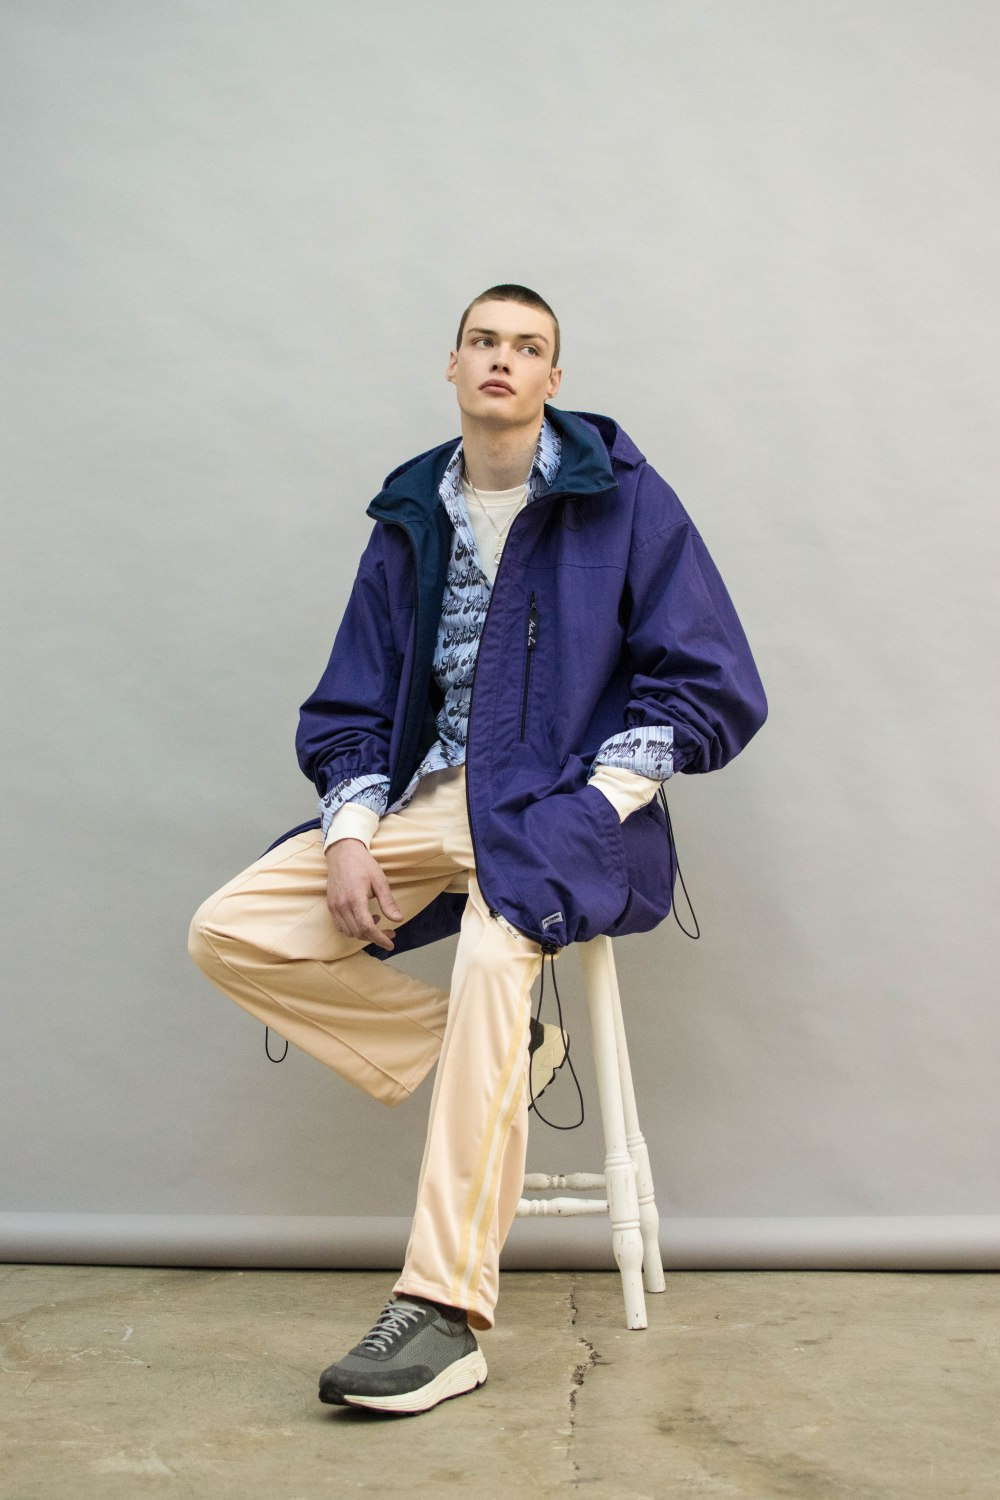 hypebeast.com Editorial 003